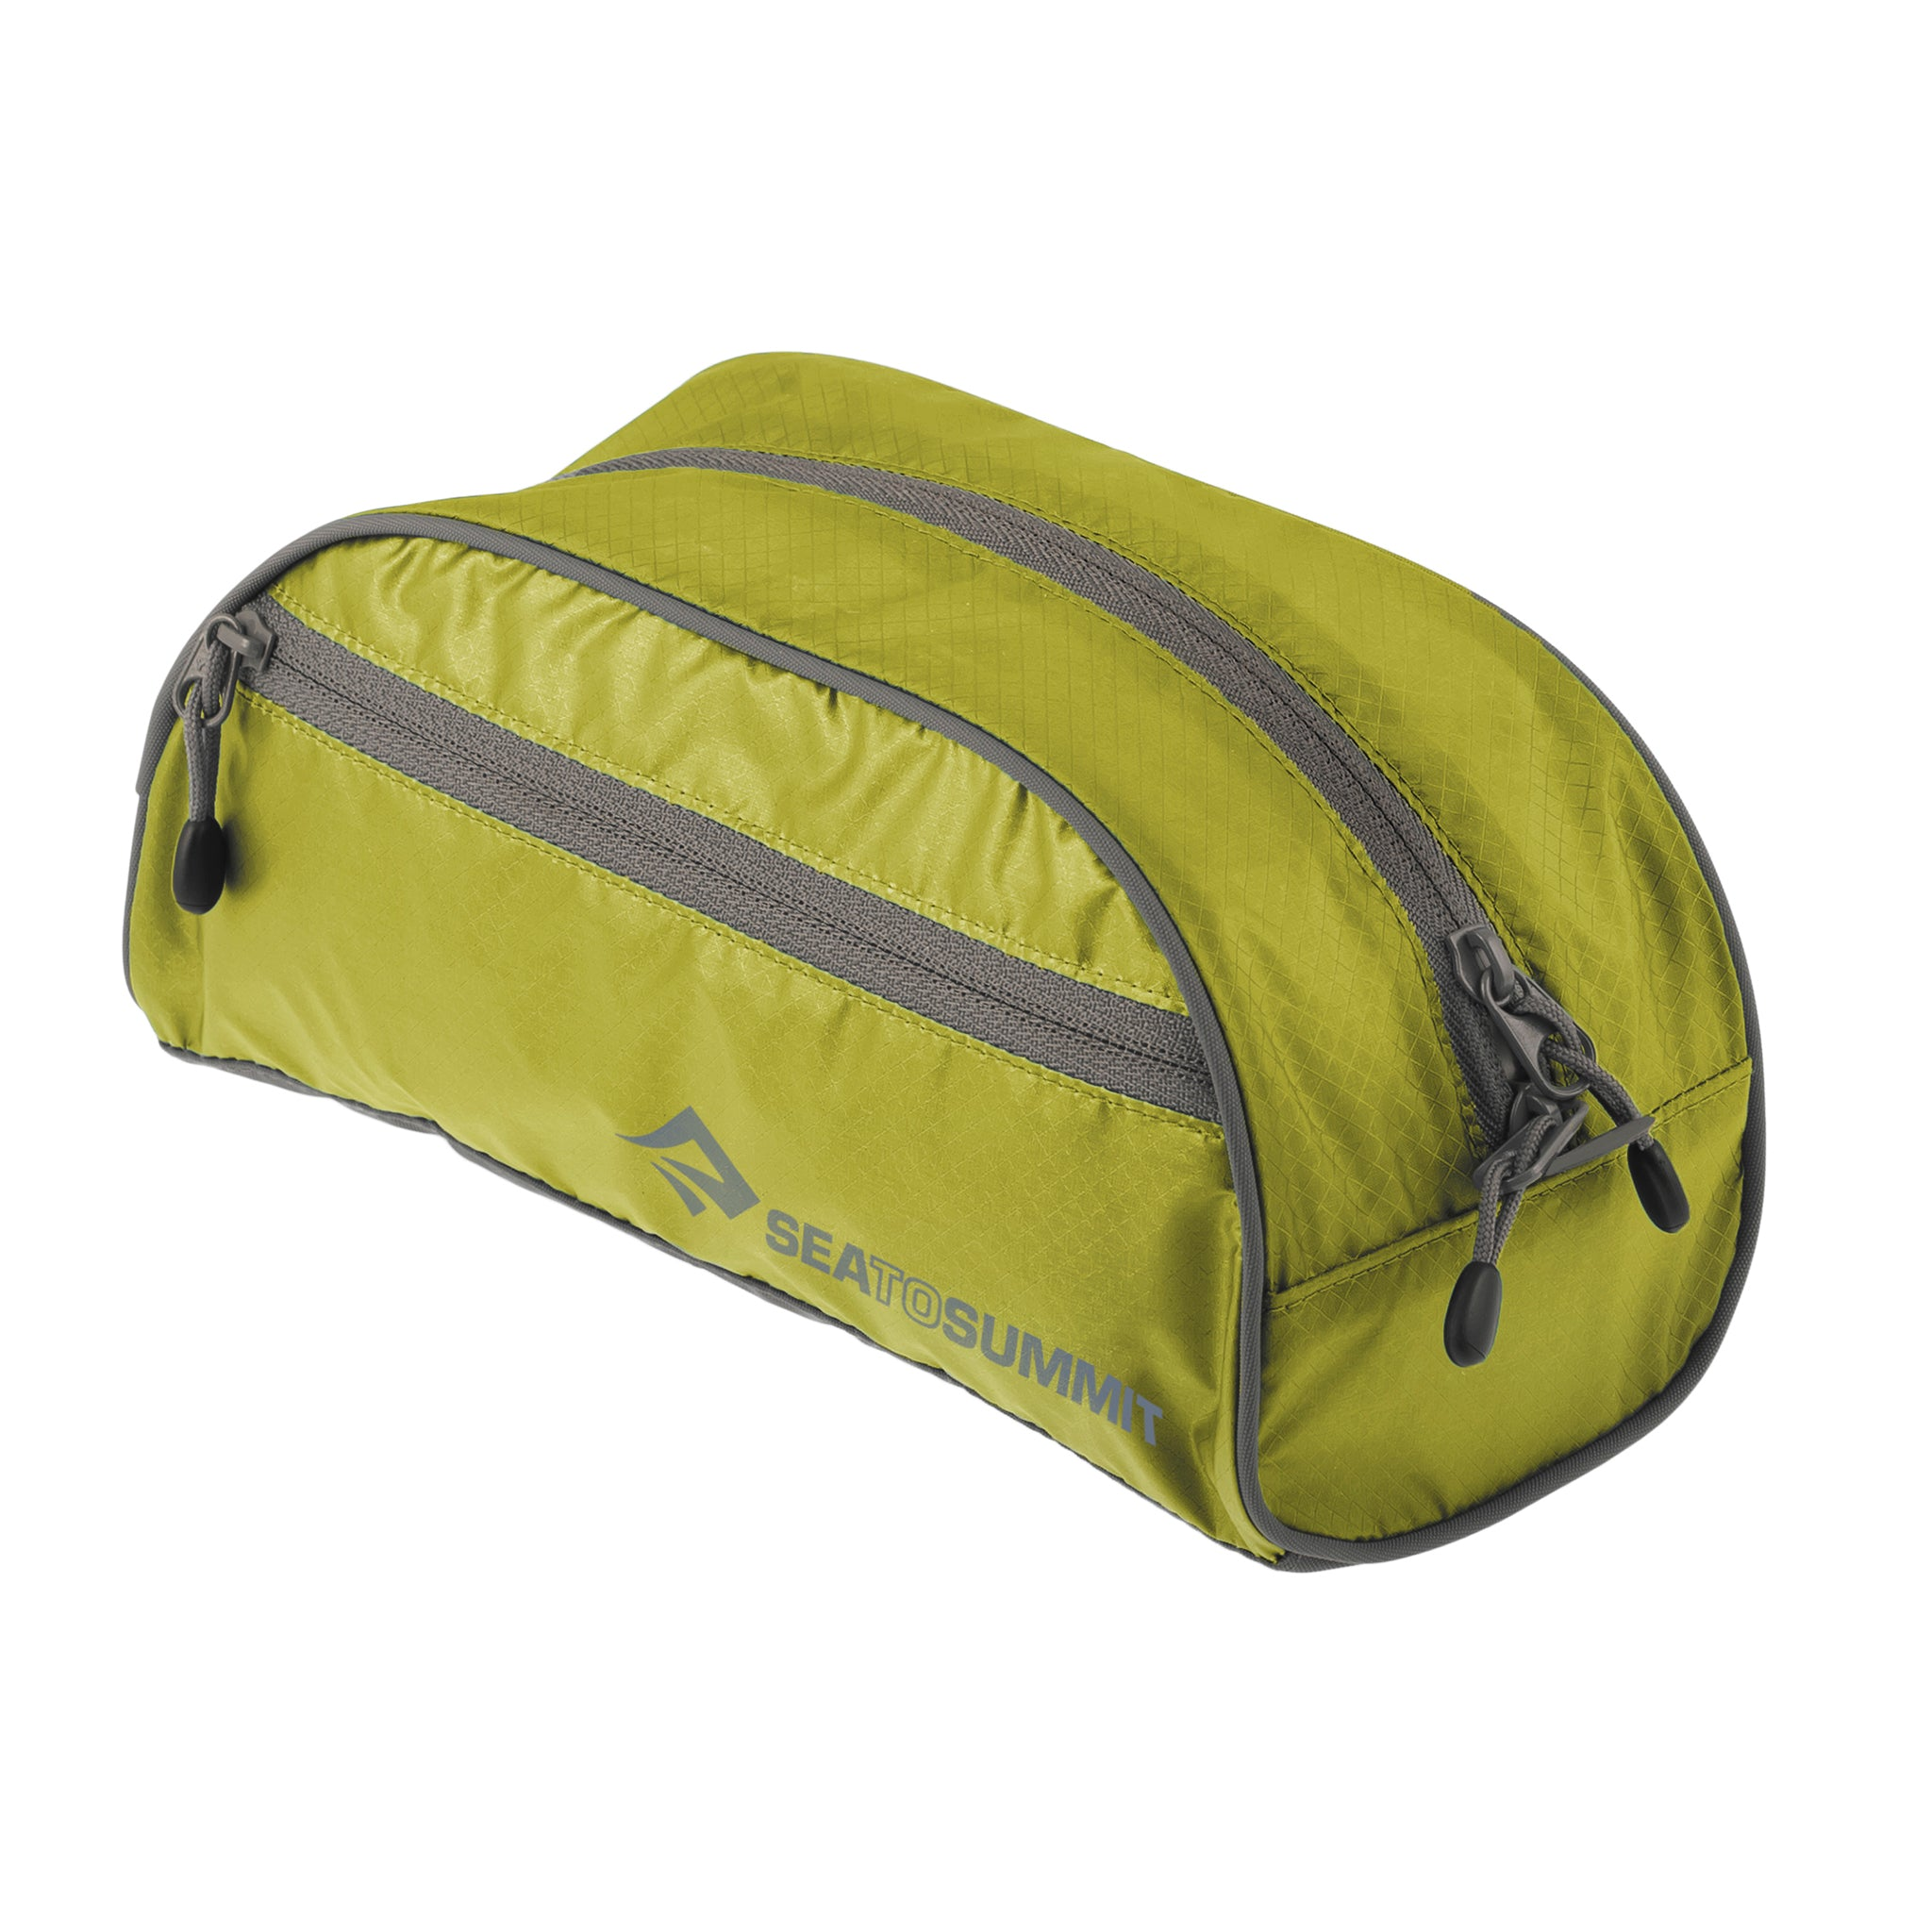 Travelling Light _Toiletry Bag _ waterproof _ small _ lime